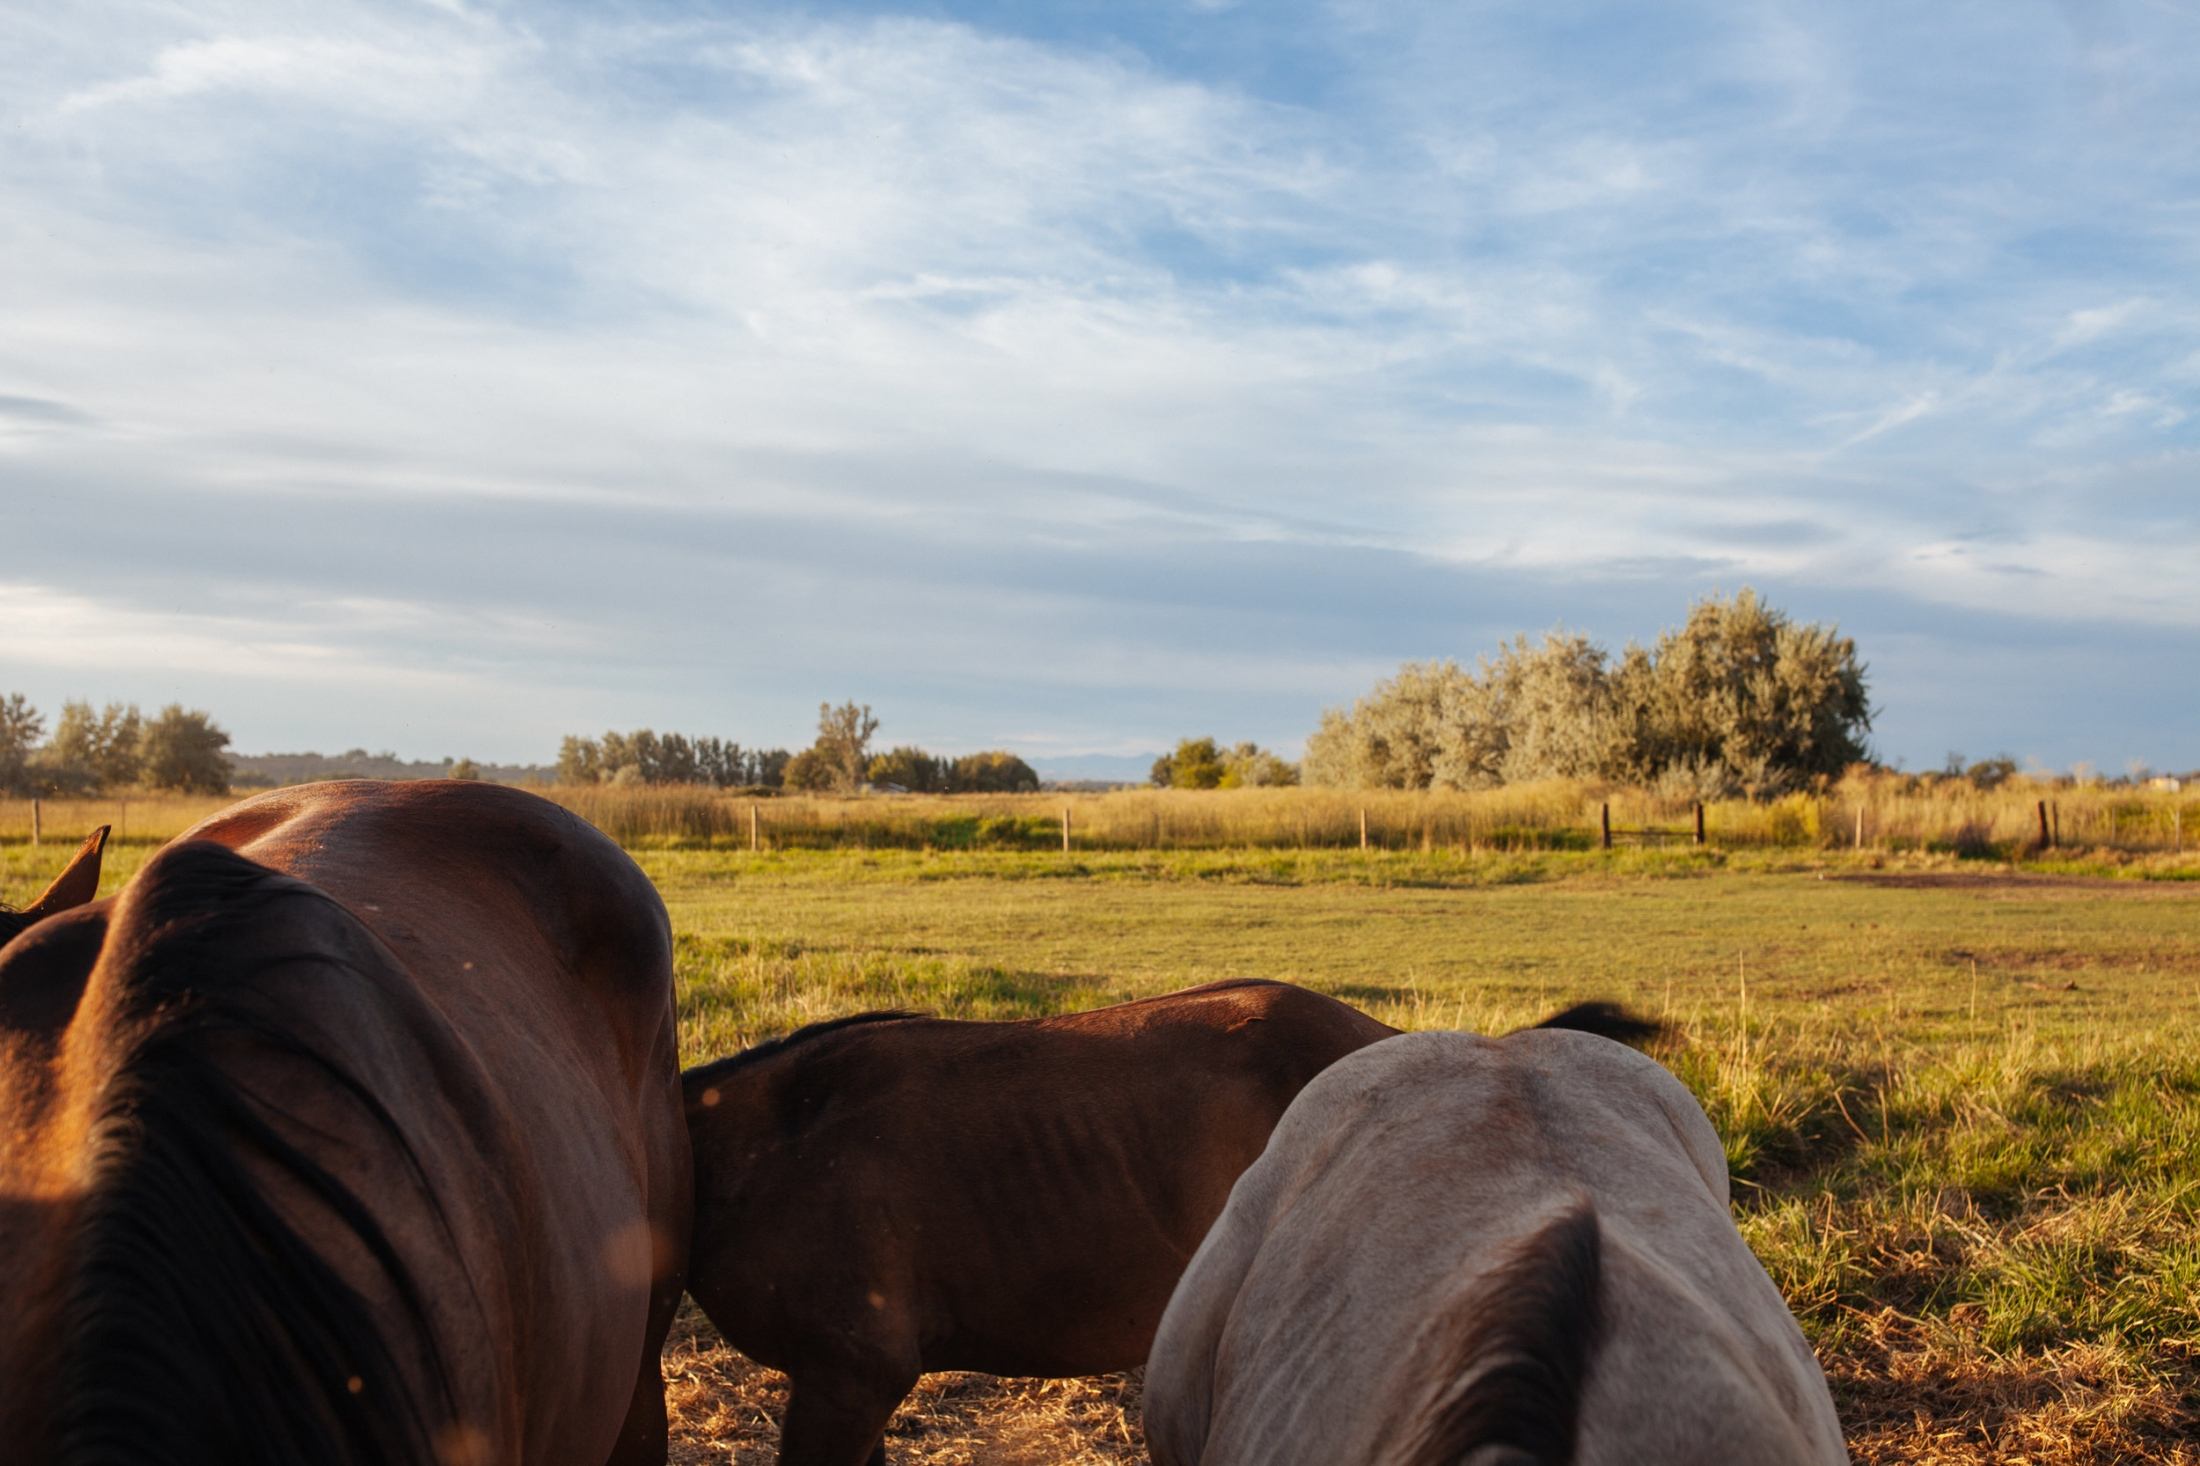 Horses in Payette, Payette, ID.